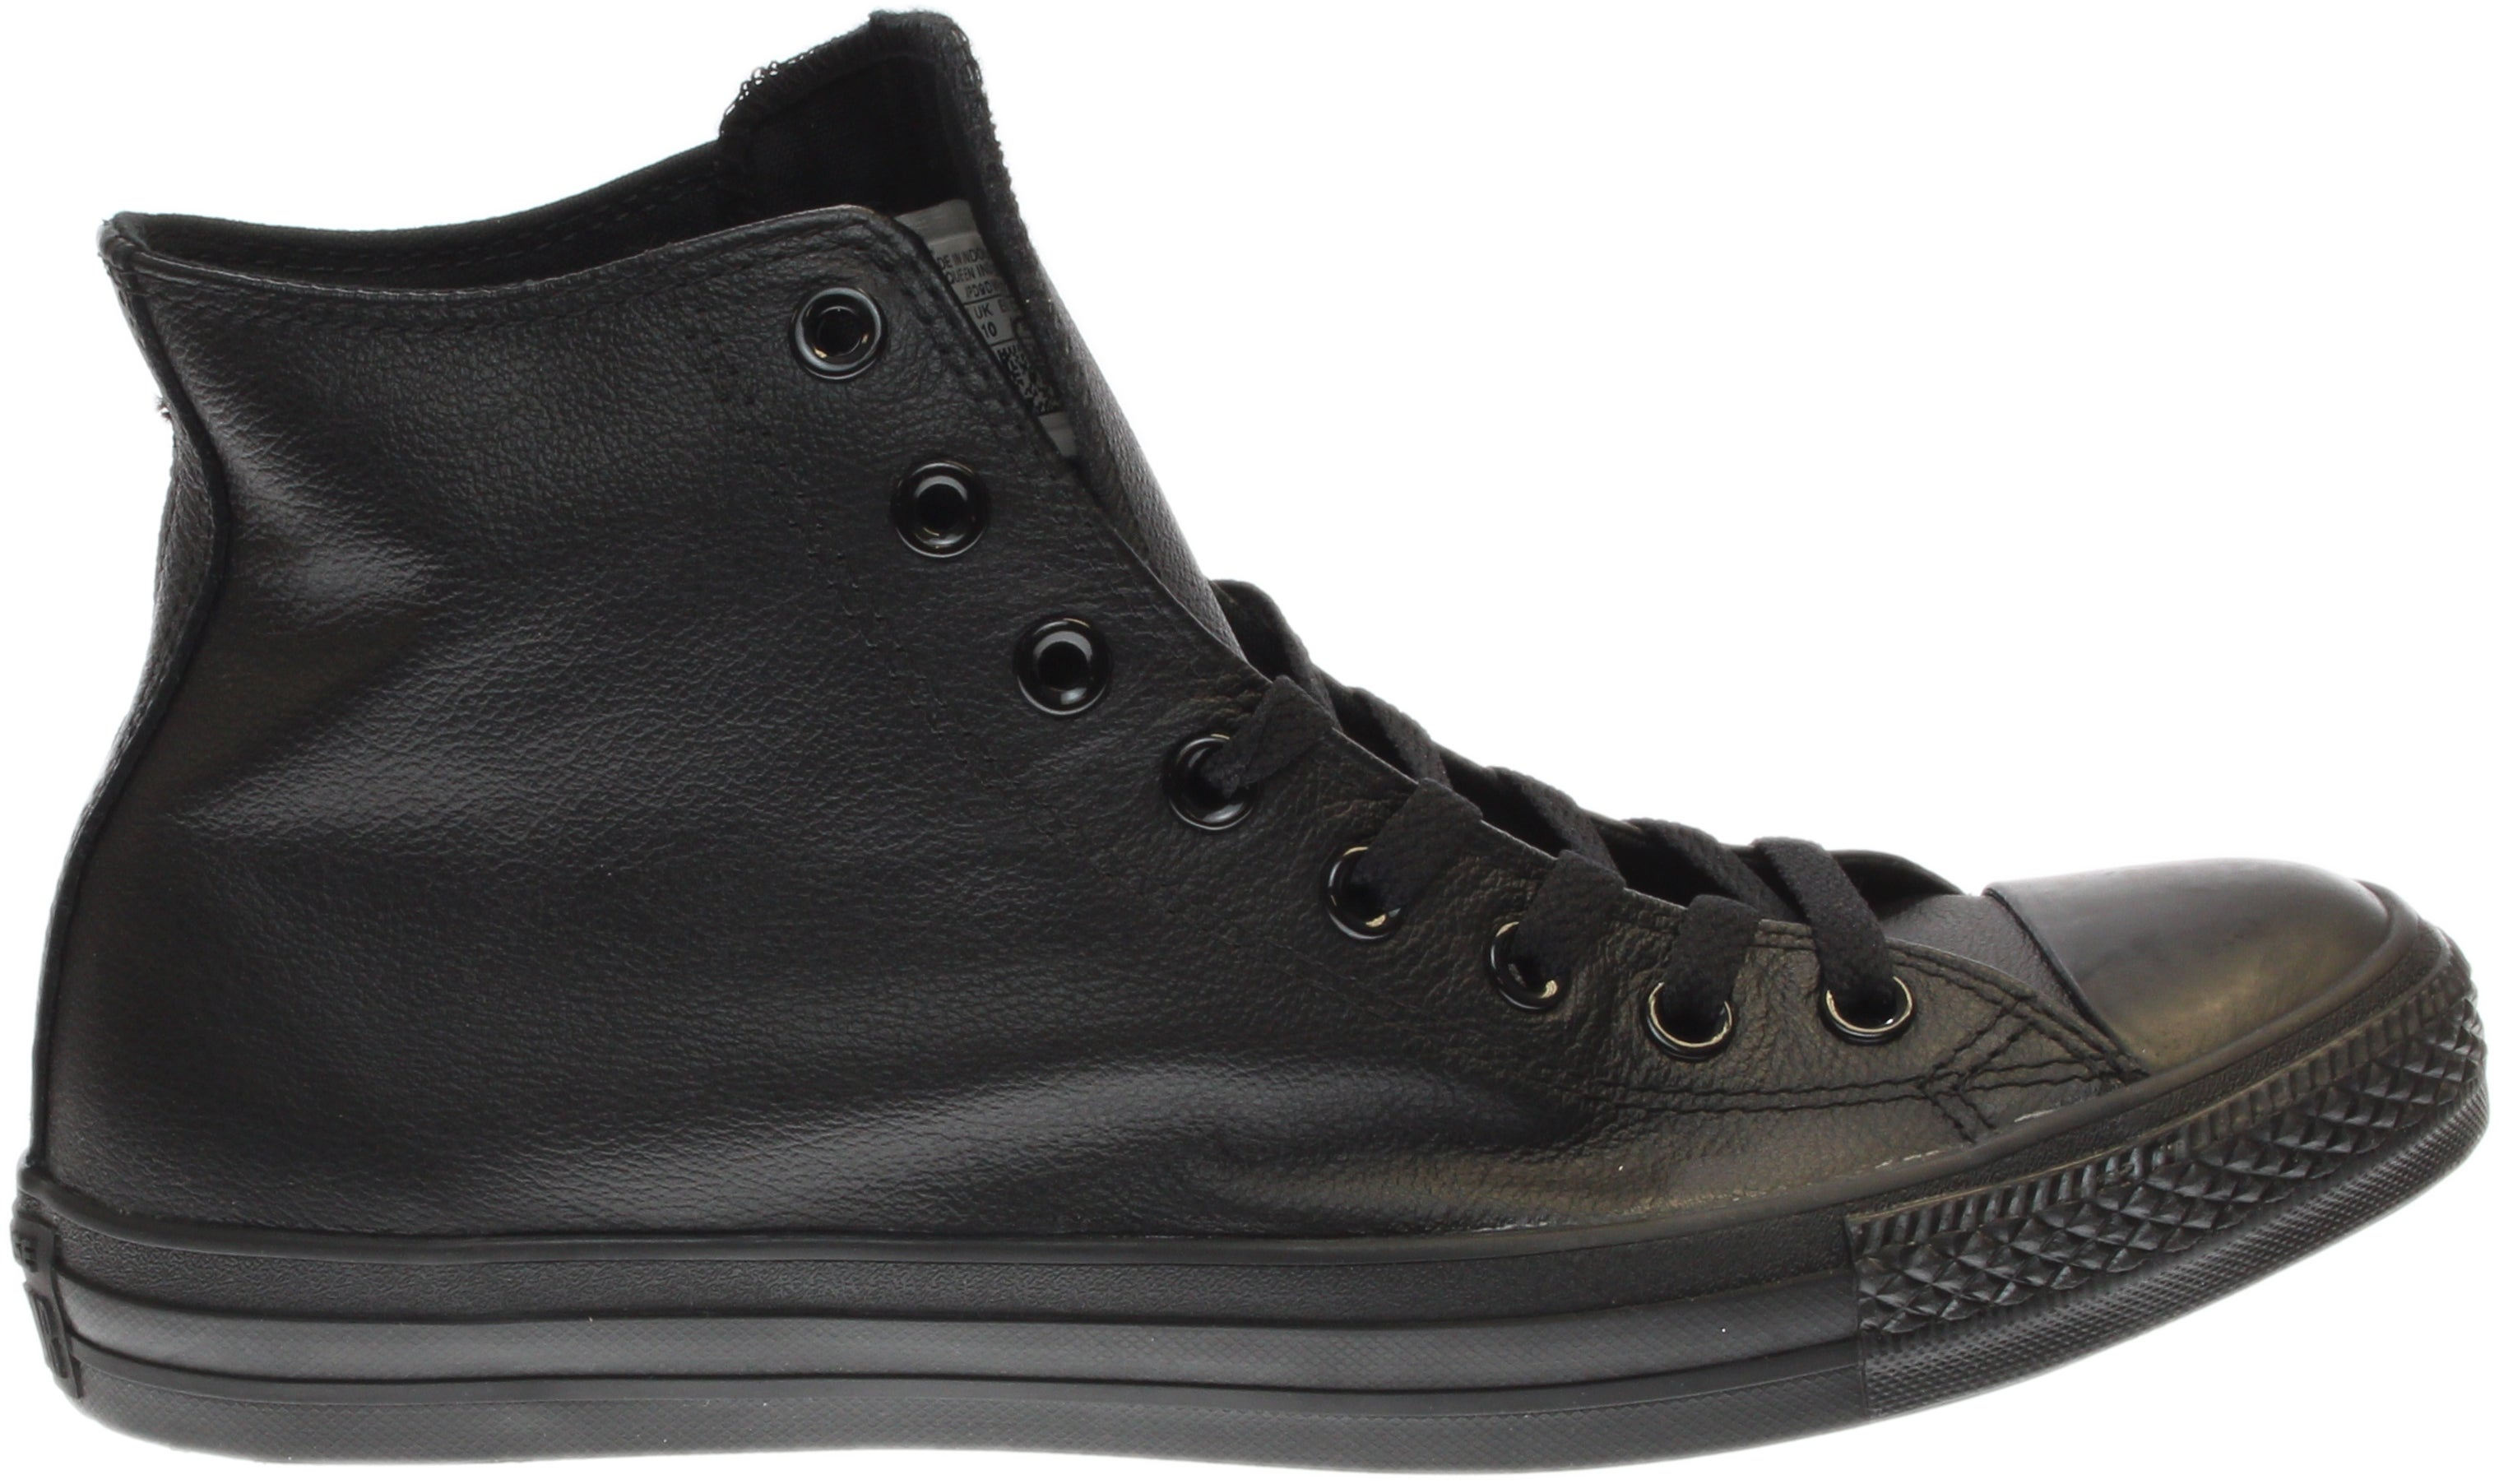 ce9c96534e03 Details about Converse All Star Hi Sneakers - Black - Mens